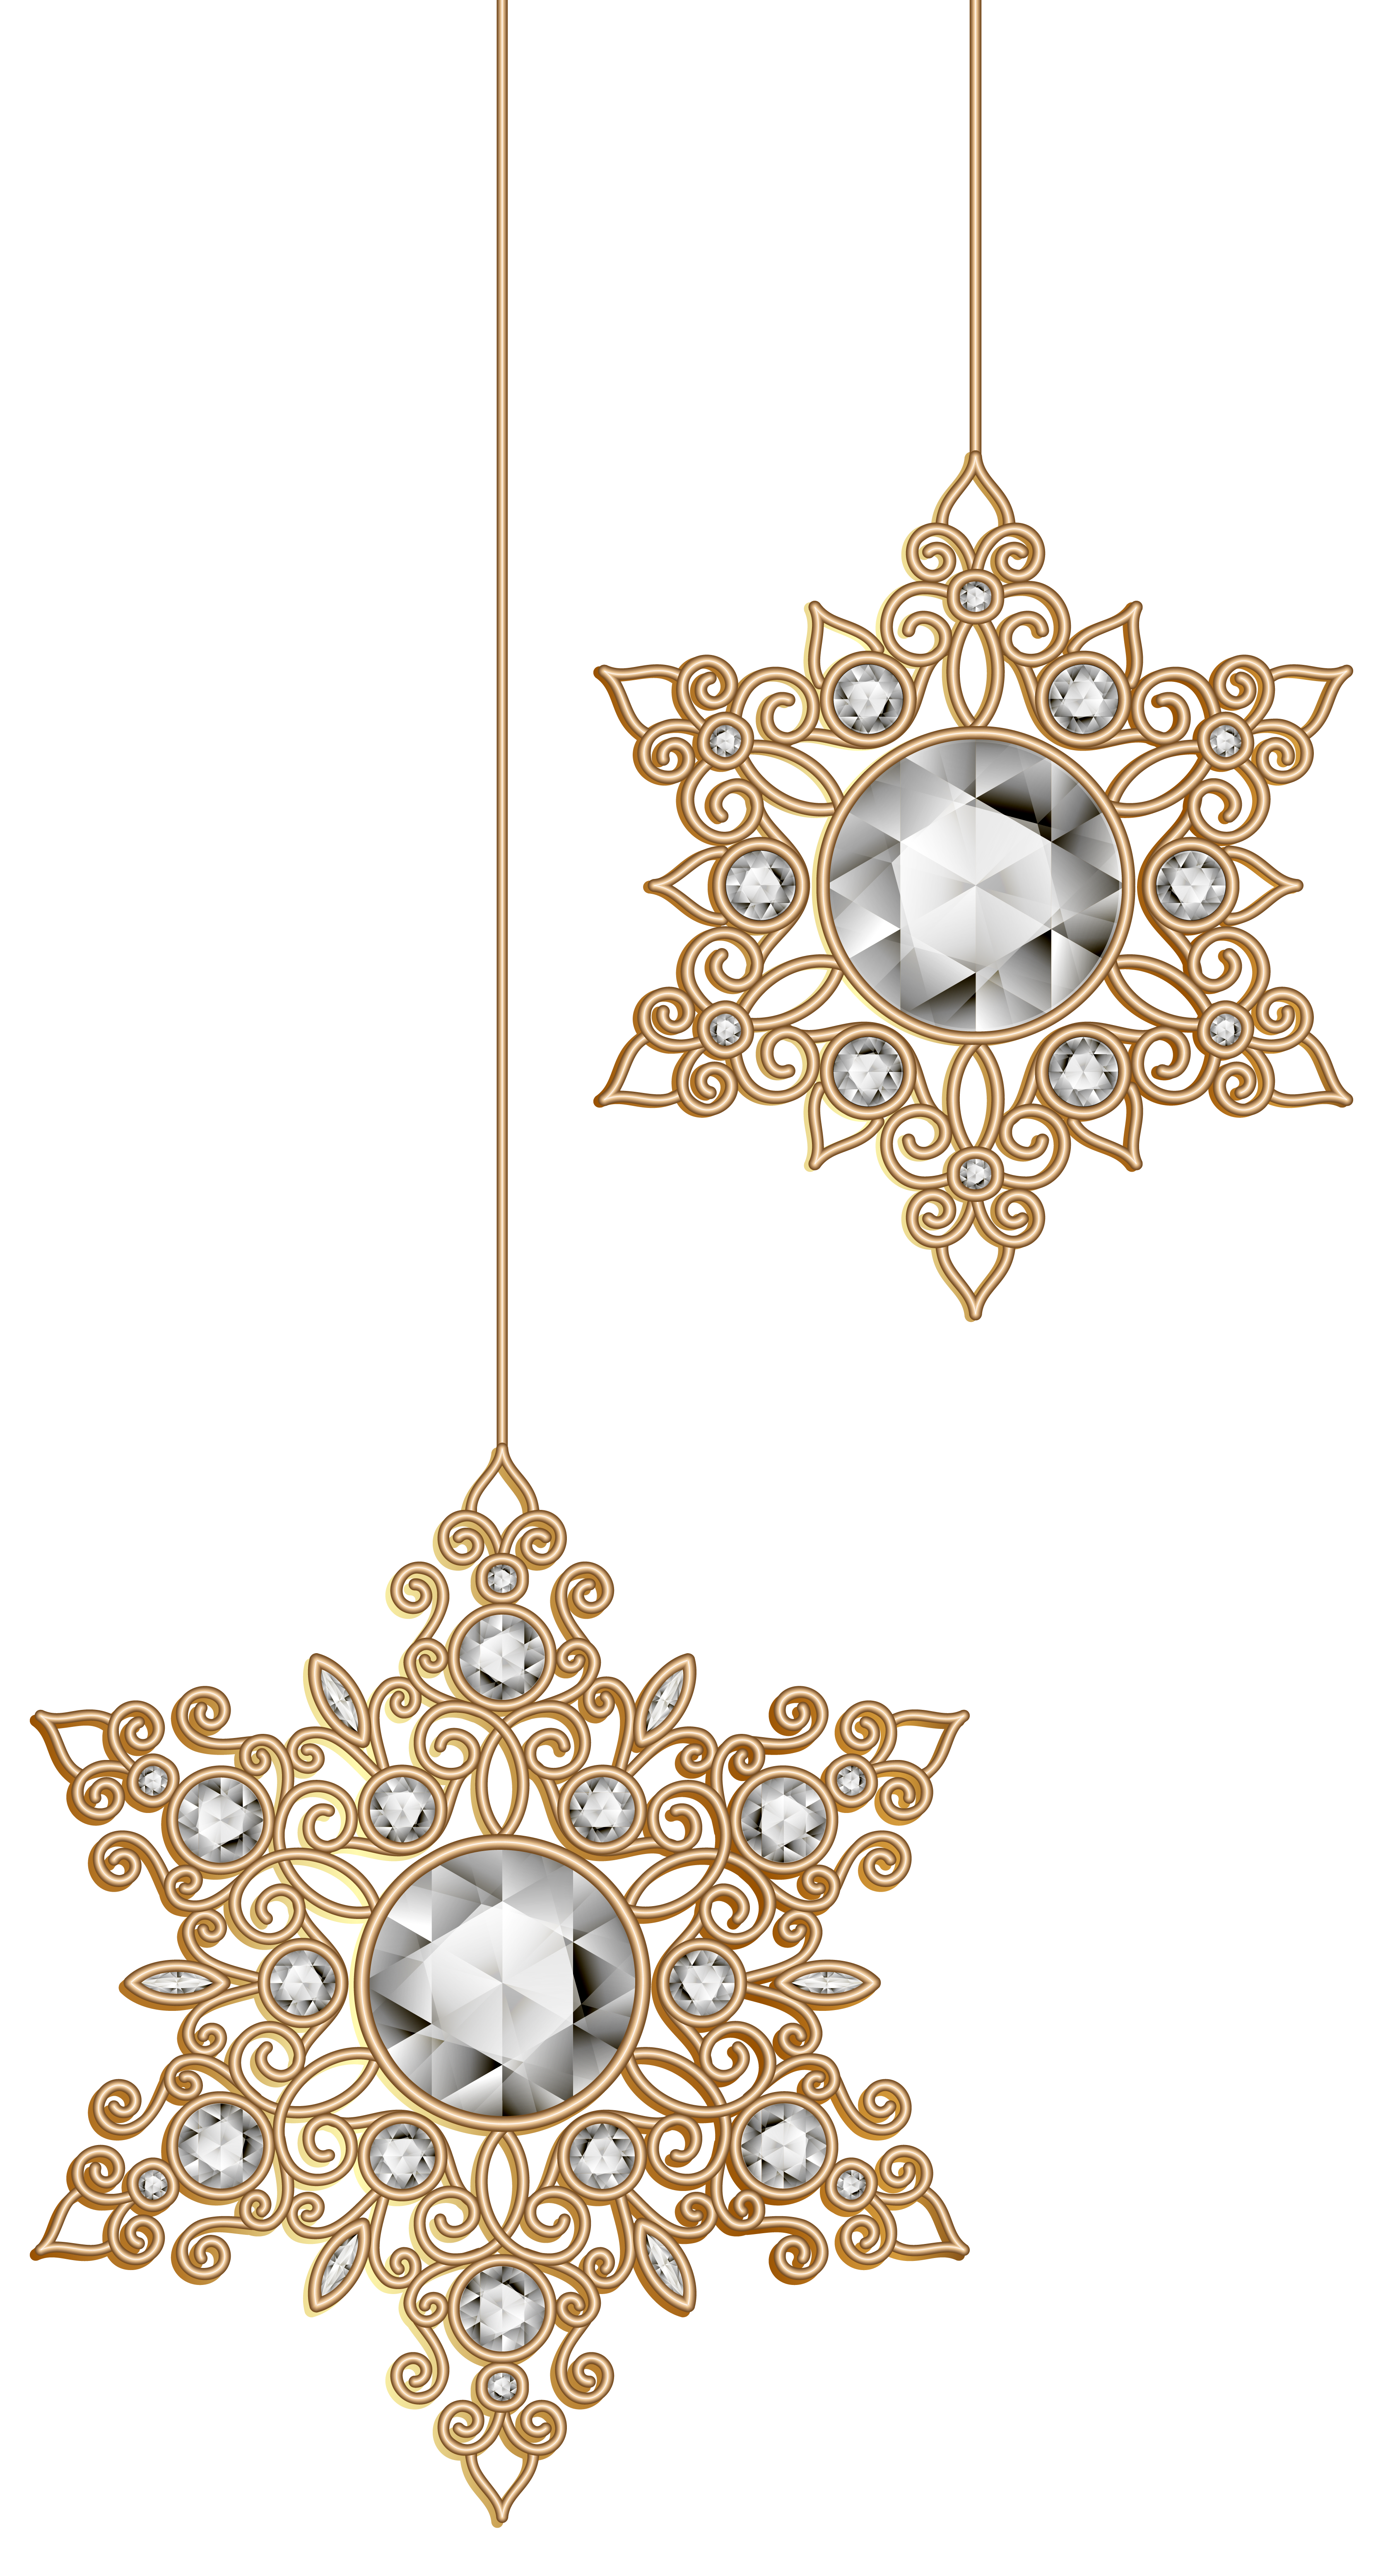 Ornament clipart jewellery logo. Christmas snowflakes ornaments png